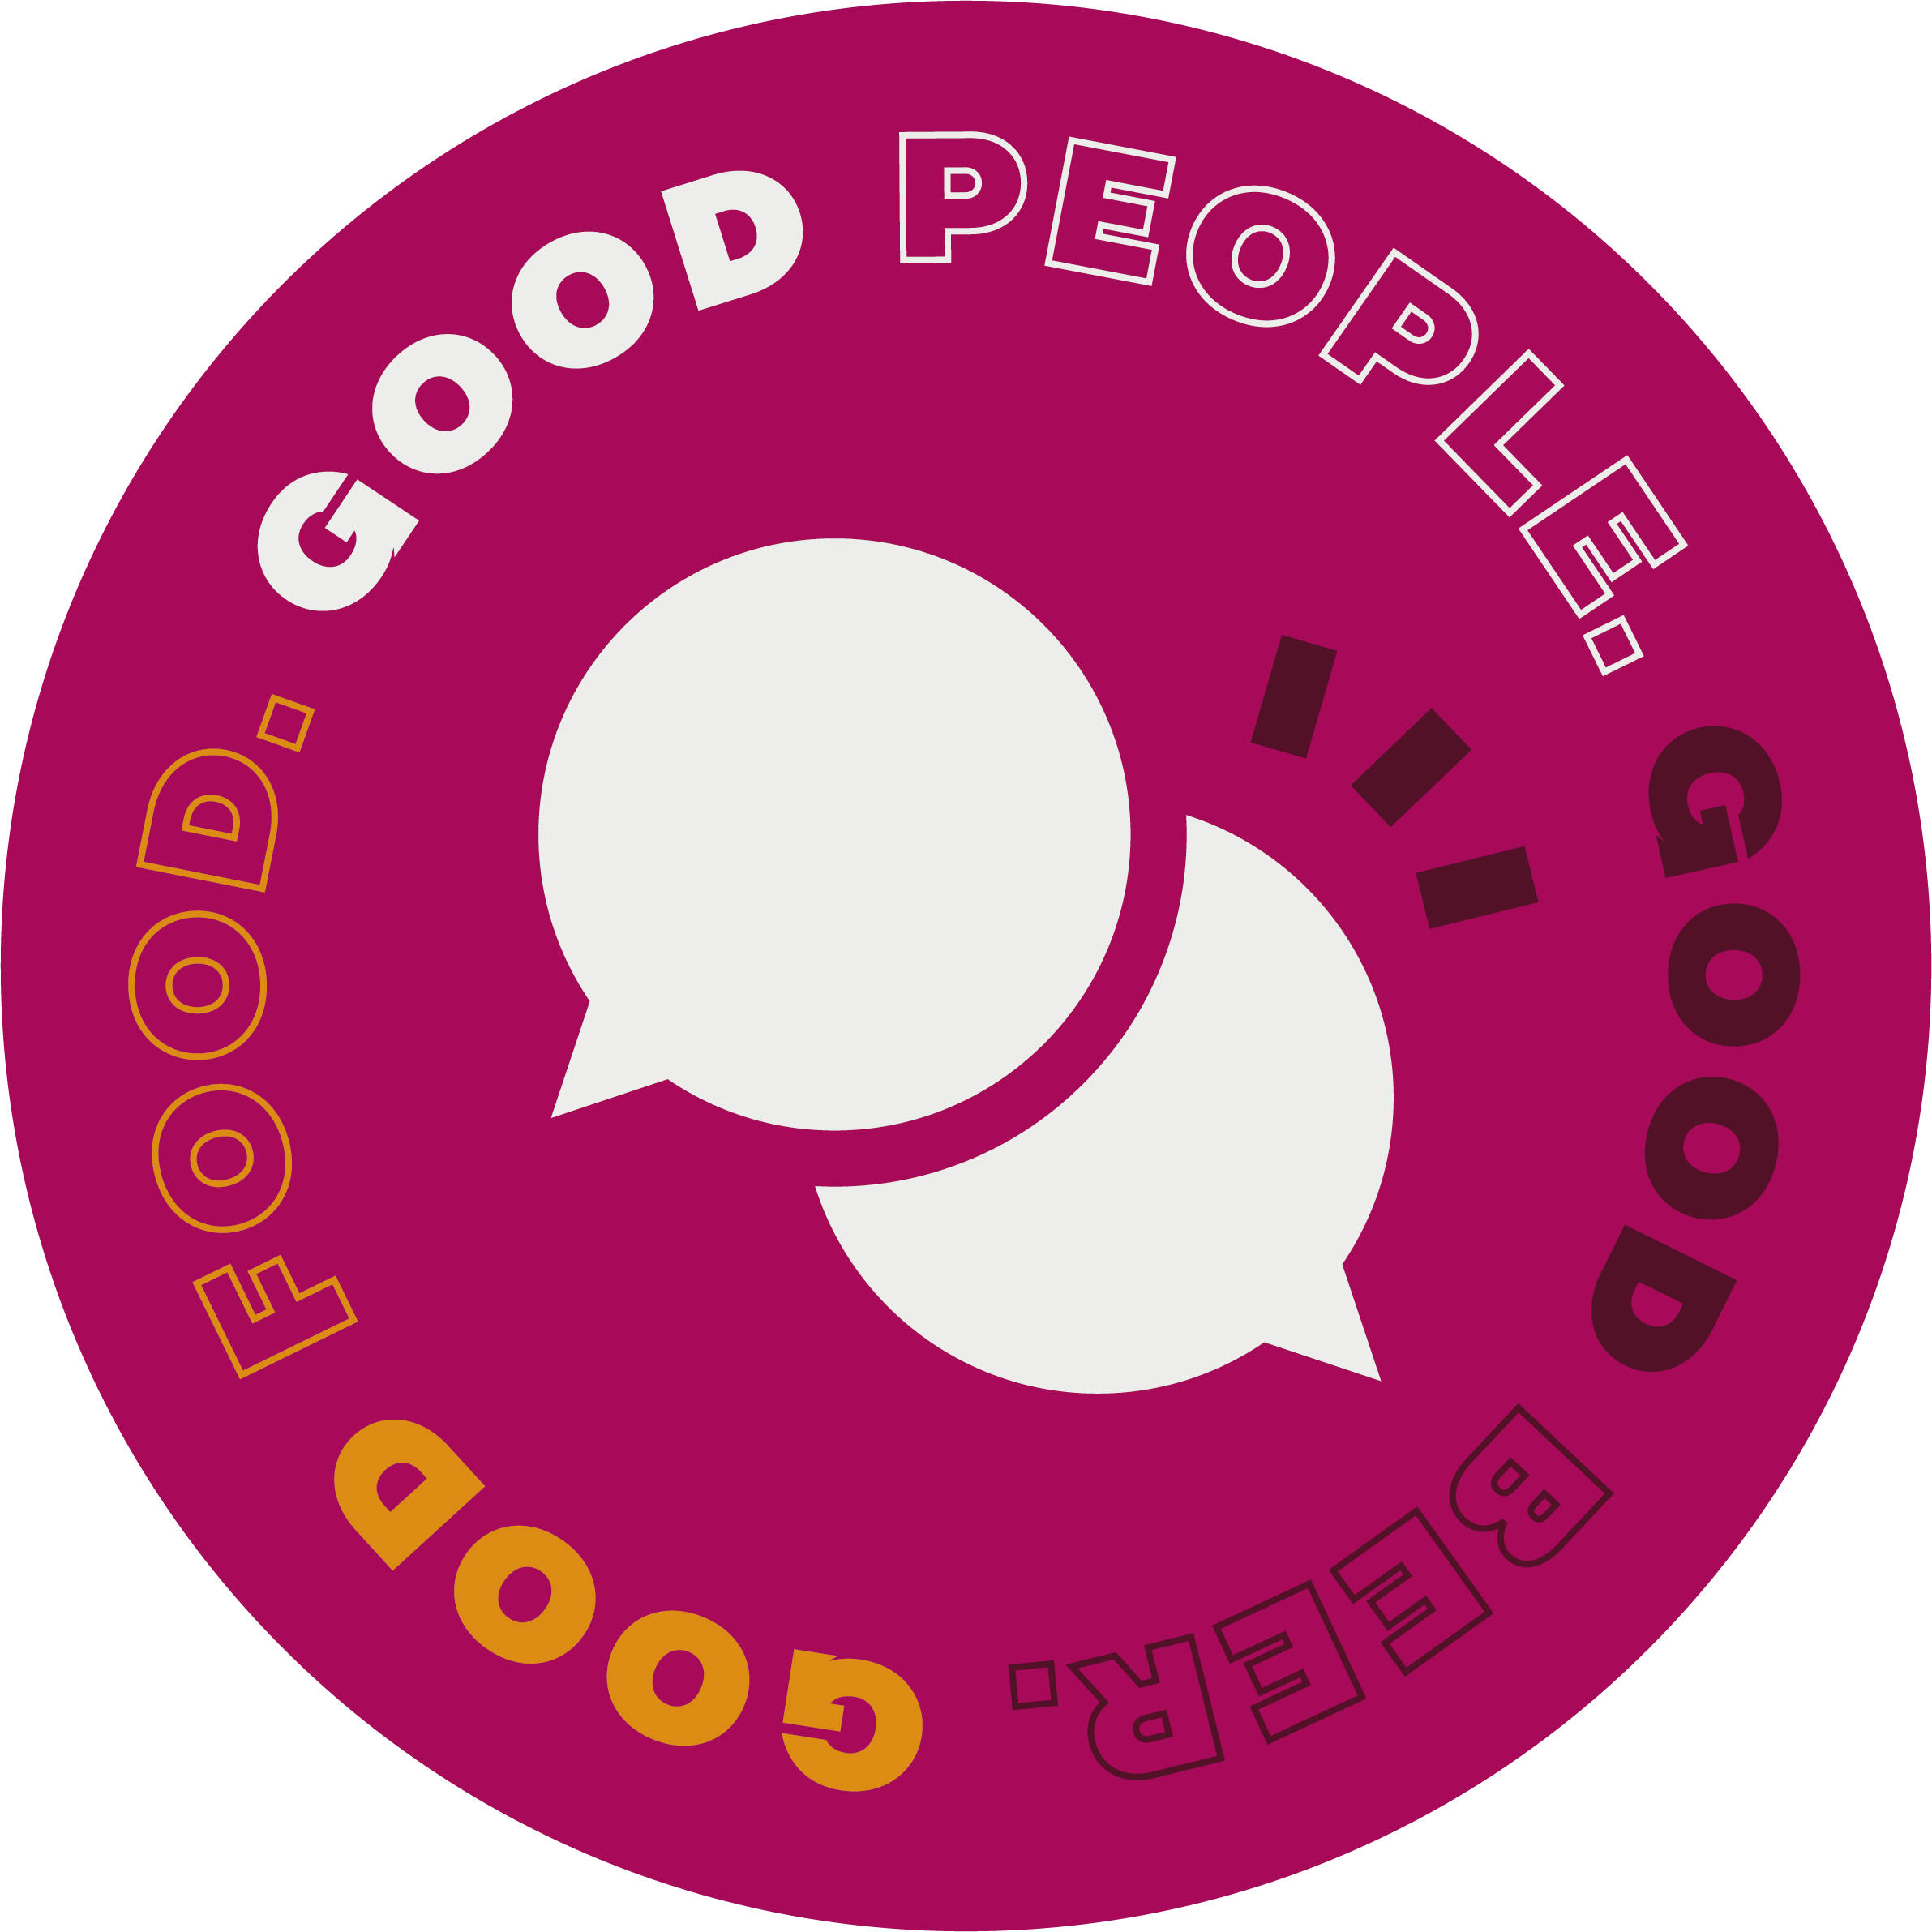 """Round sticker with a speech bubble  icon, saying """"Good People. Good Beer. Good Food.""""."""